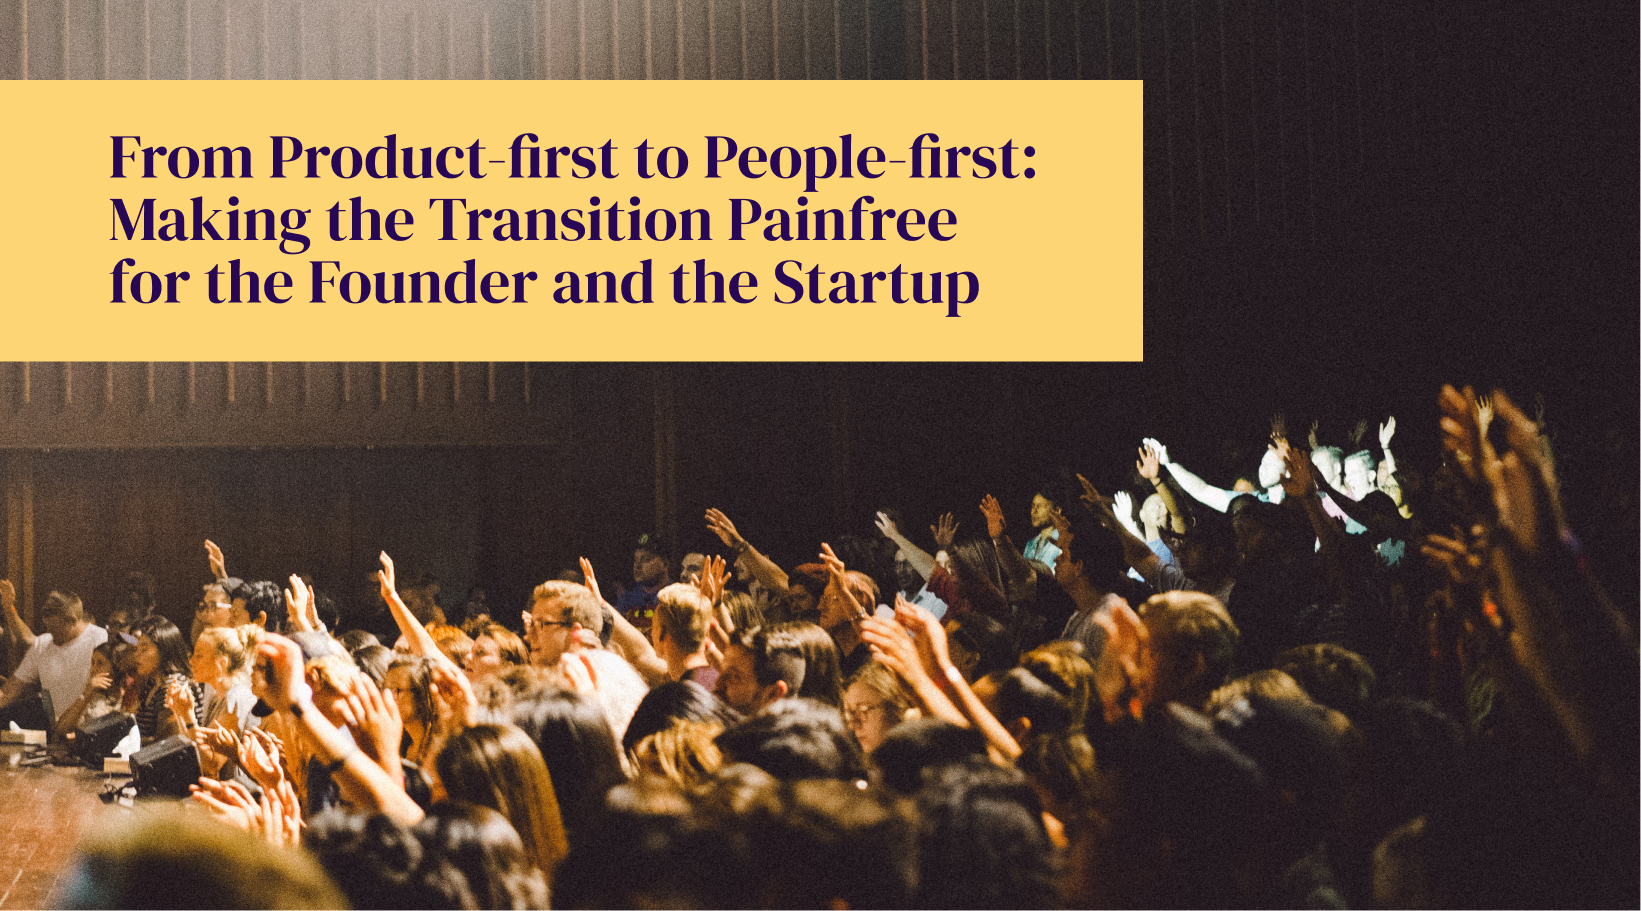 From Product-first to People-first: Making the Transition Painfree for the Founder and the Startup